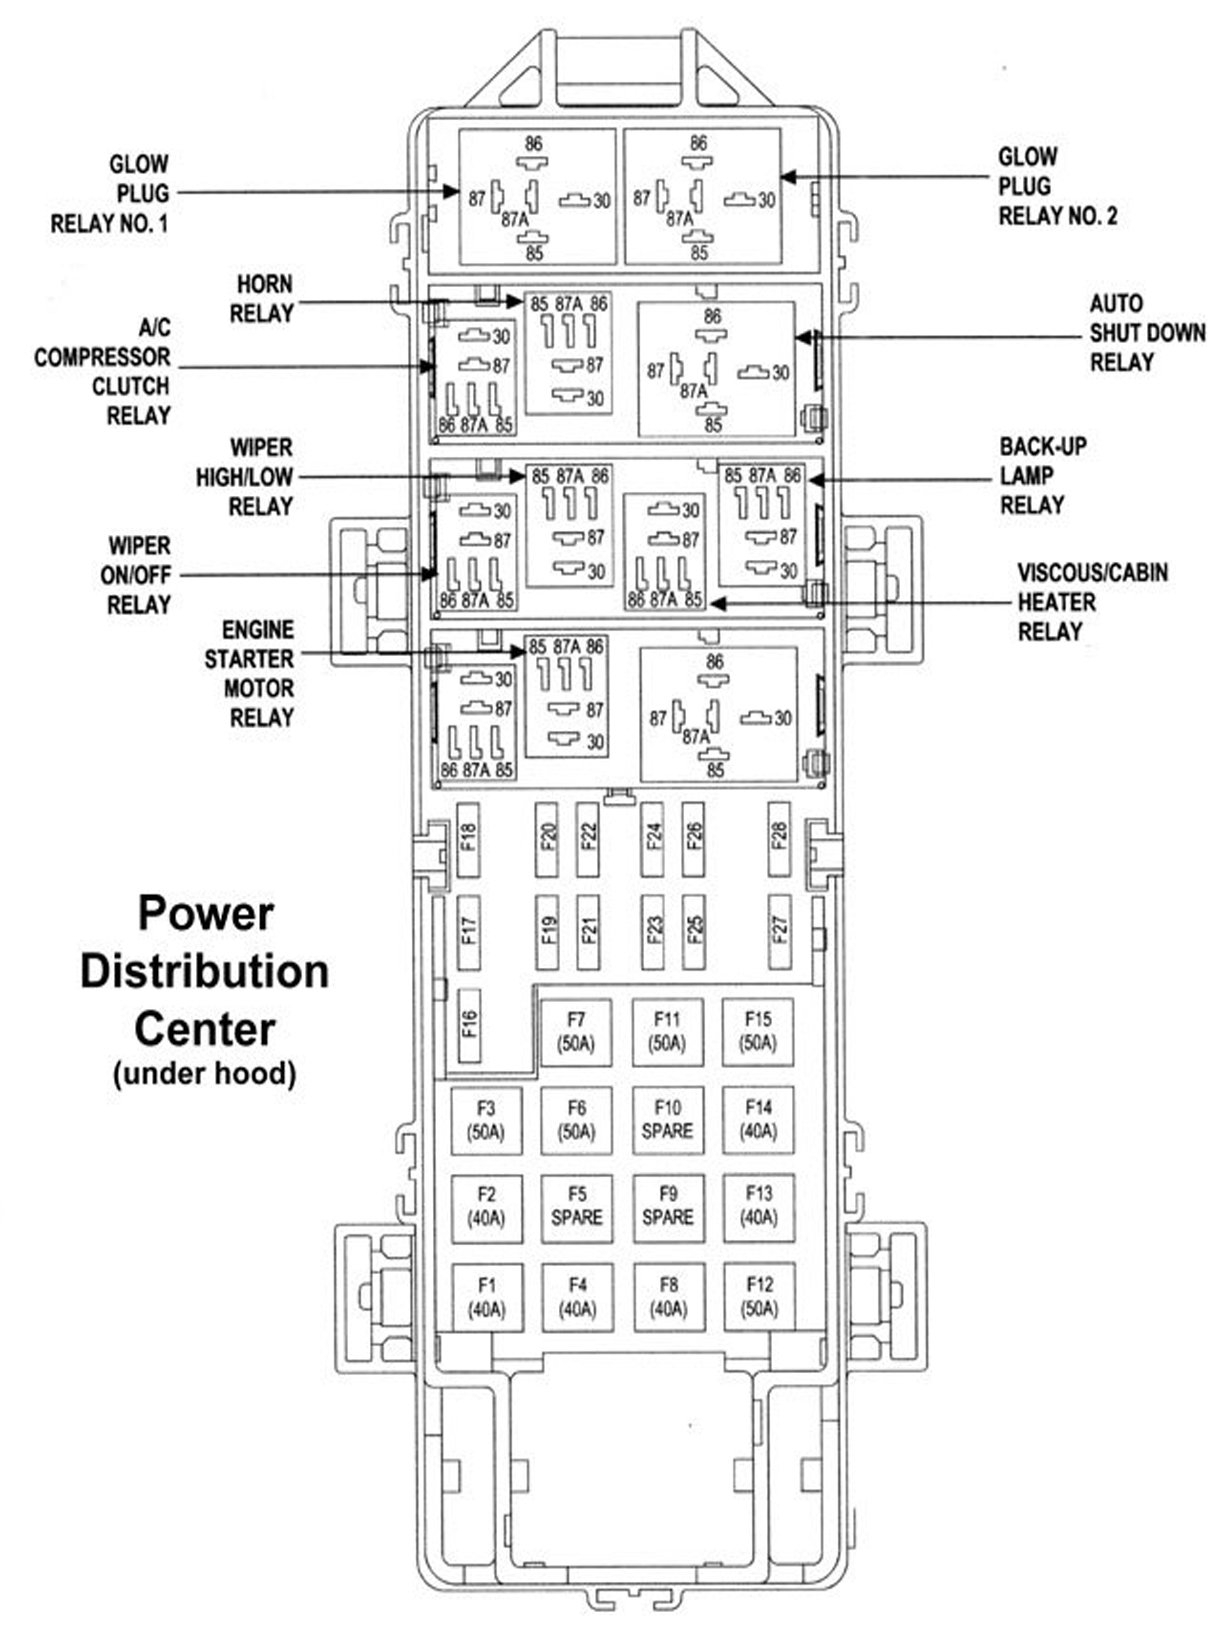 1998 Jeep Cherokee Sport Fuse Panel Diagram - Wiring Diagram Filter  mere-follow - mere-follow.cosmoristrutturazioni.it | 98 Cherokee Fuse Box |  | Cos.Mo. S.r.l.